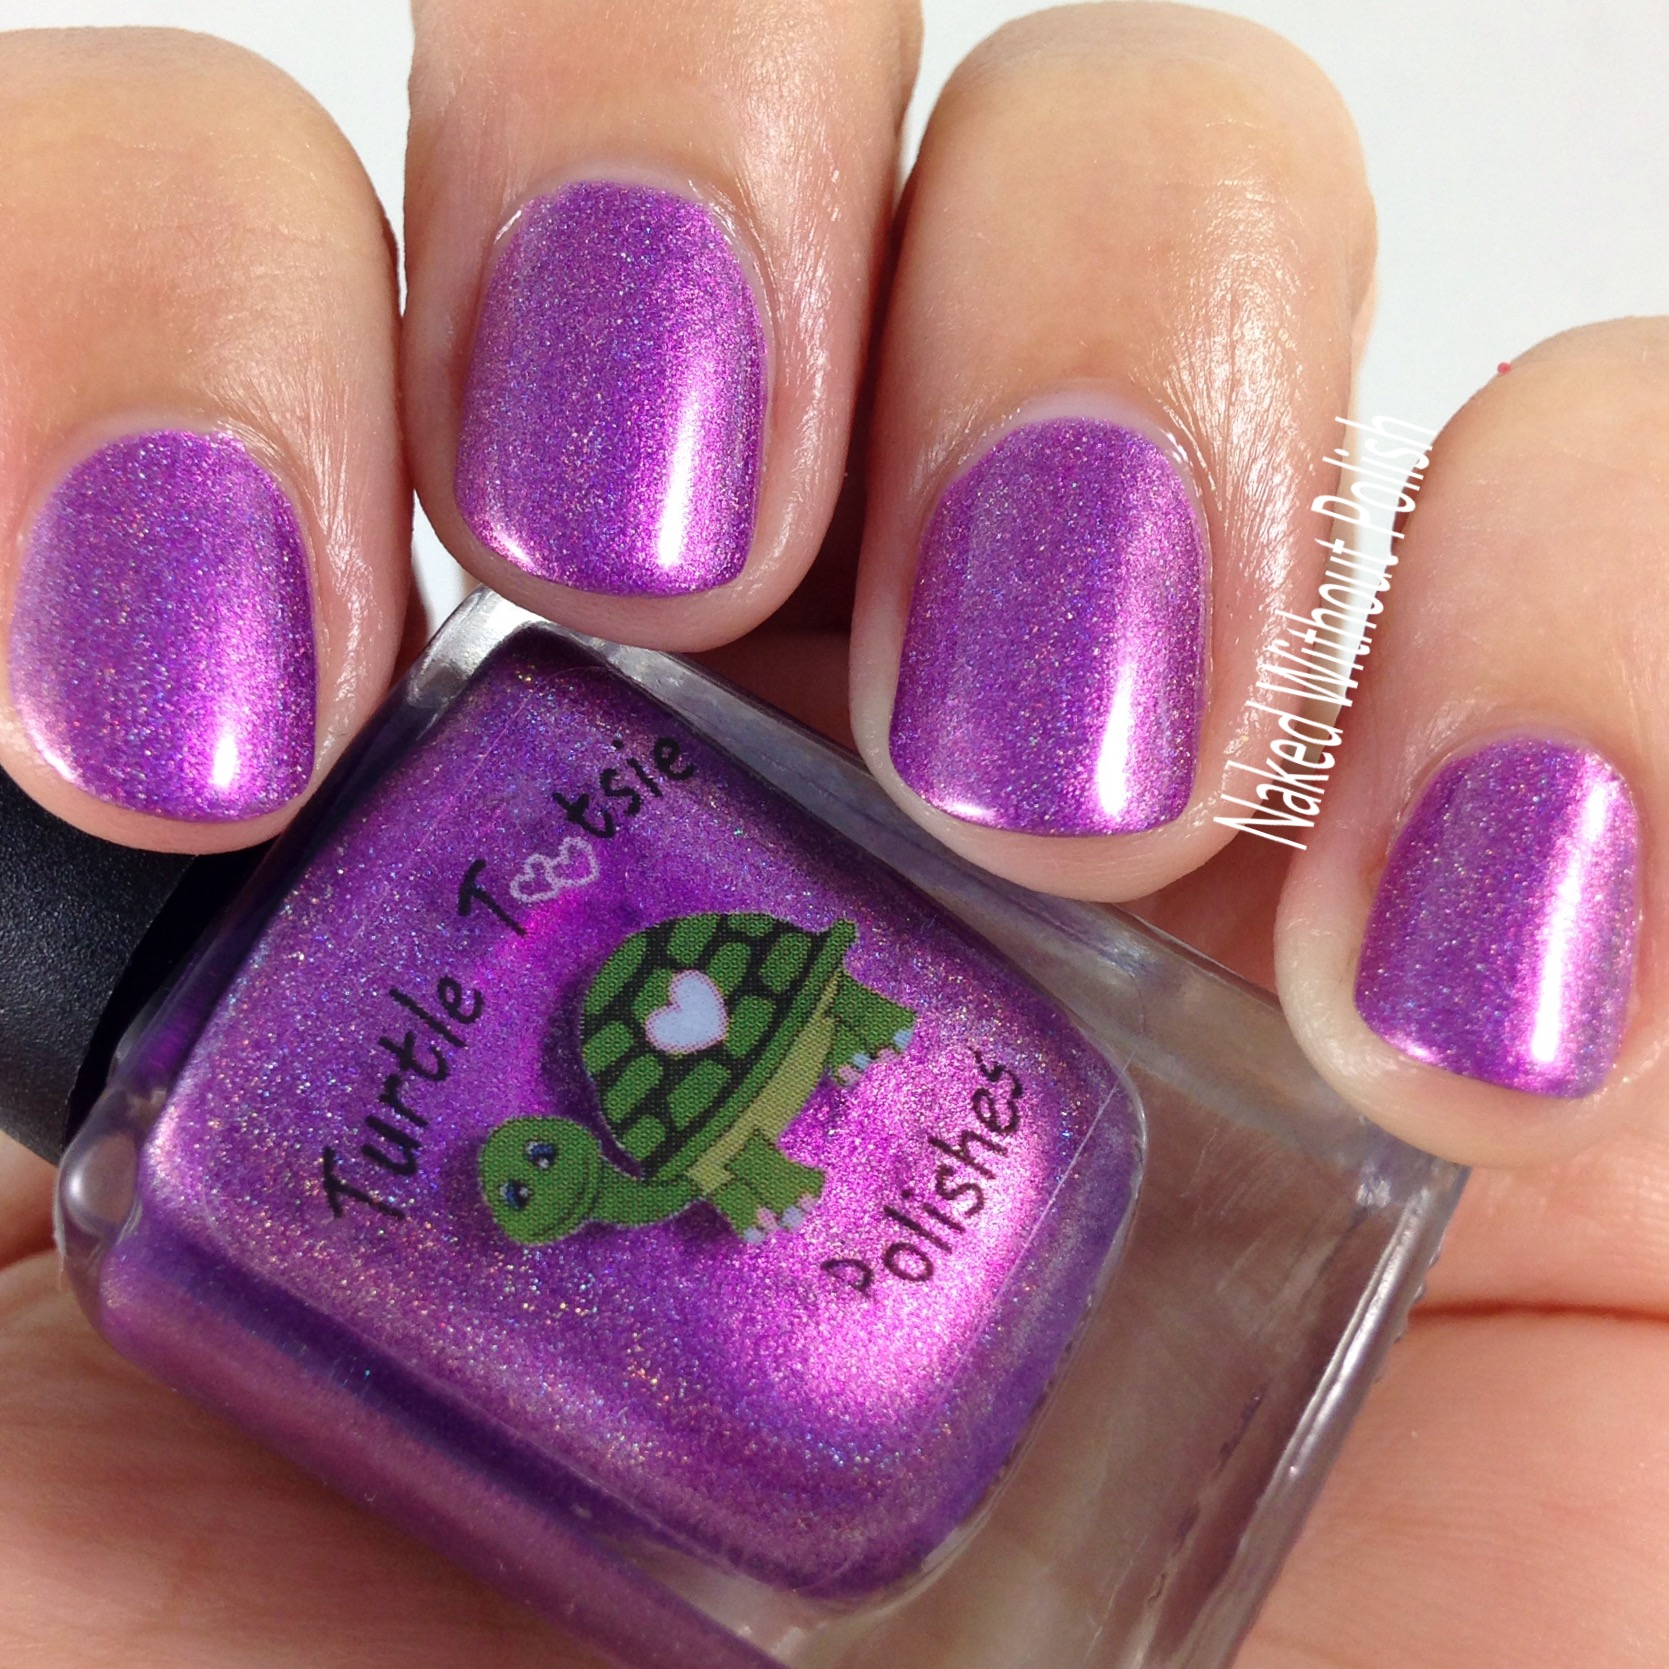 Turtle-Tootsie-Polishes-Hickey-from-Kenickie-6